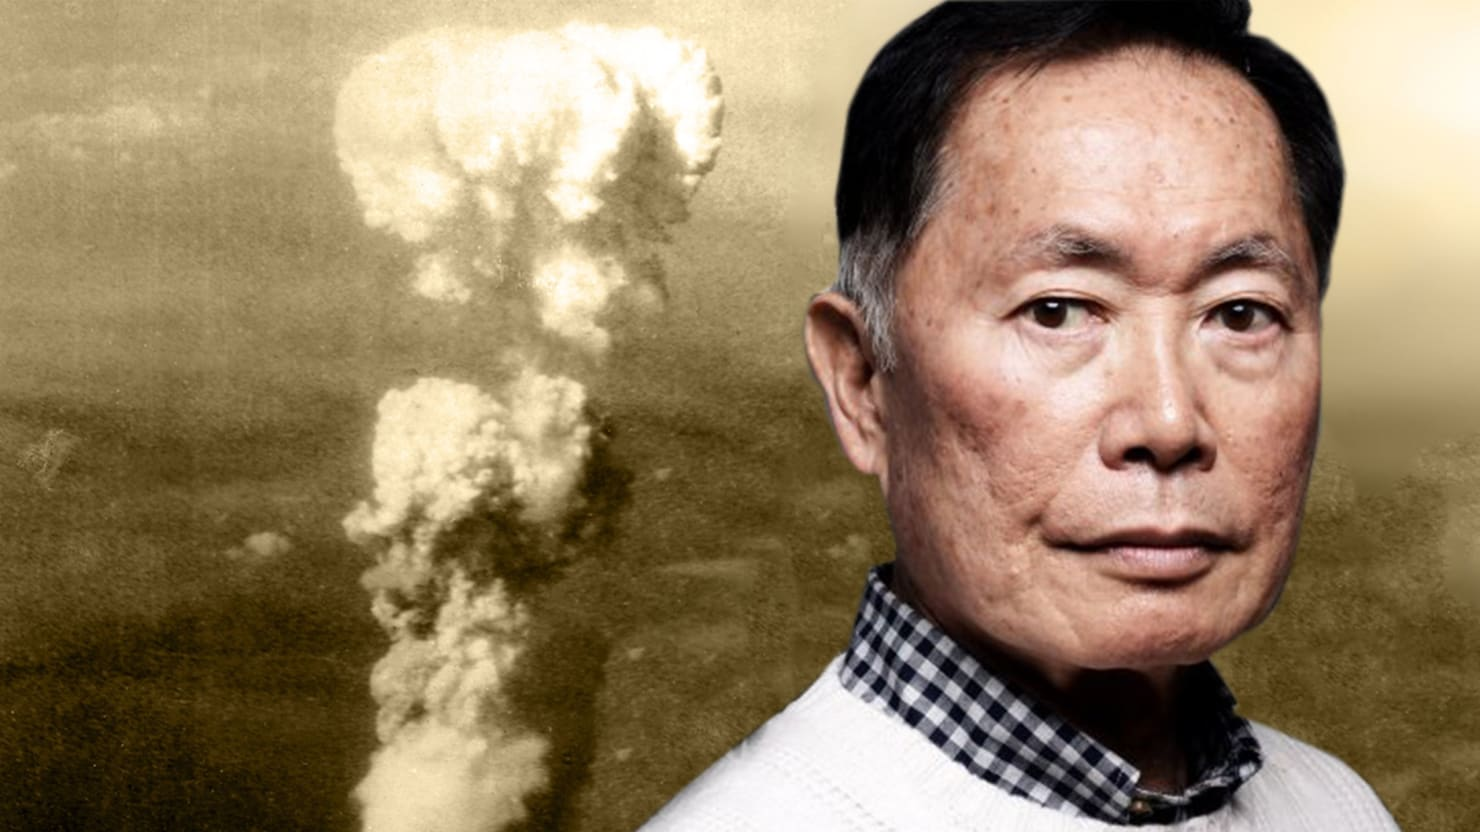 George Takei: I Lost Family in Hiroshima. Mr. Trump, Nuclear Weapons Are No Game.